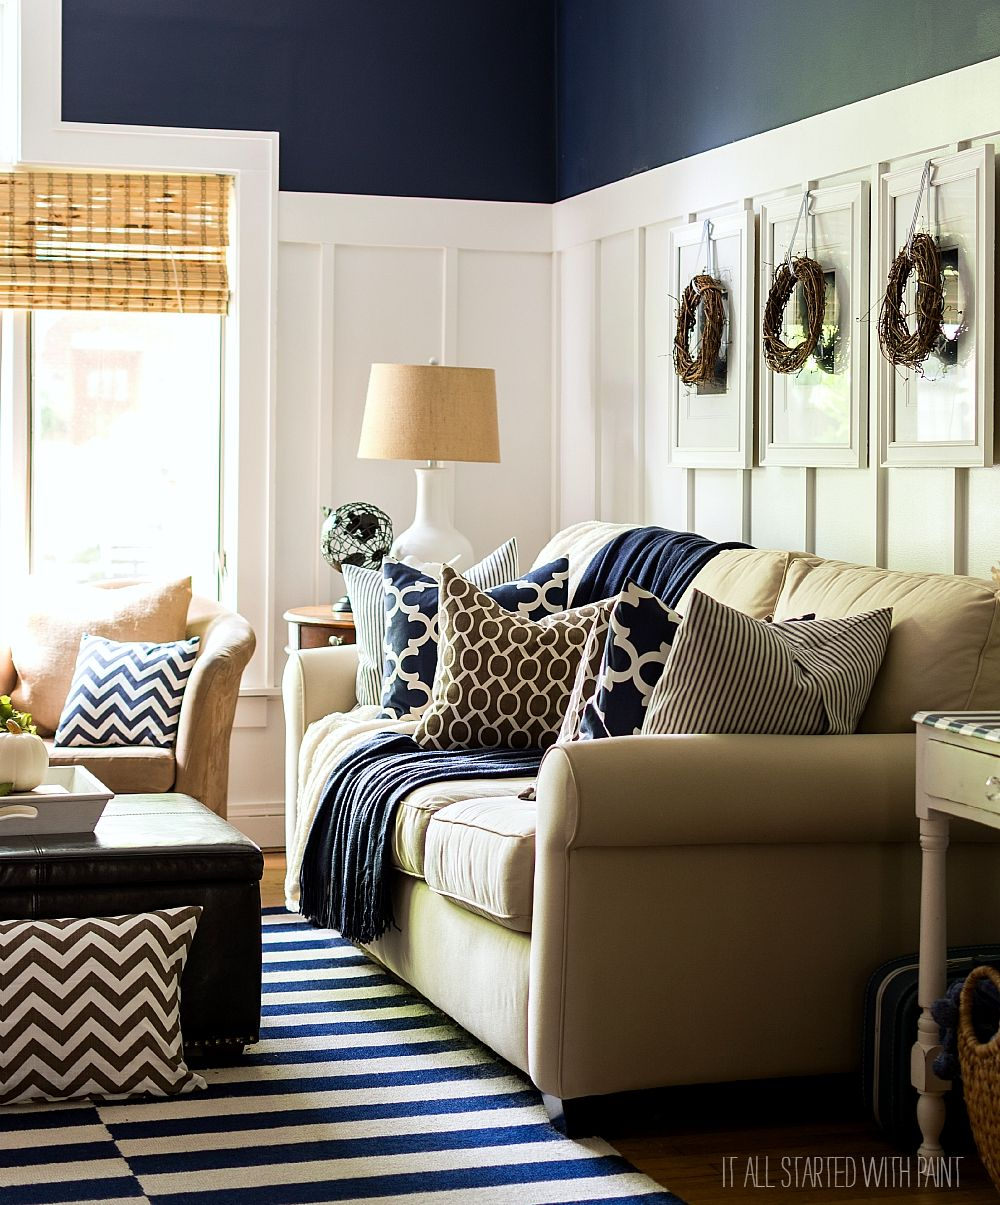 blue living room furniture decorating ideas japanese style fall decor in navy and favorite finds using brown neutrals board batten decorated for